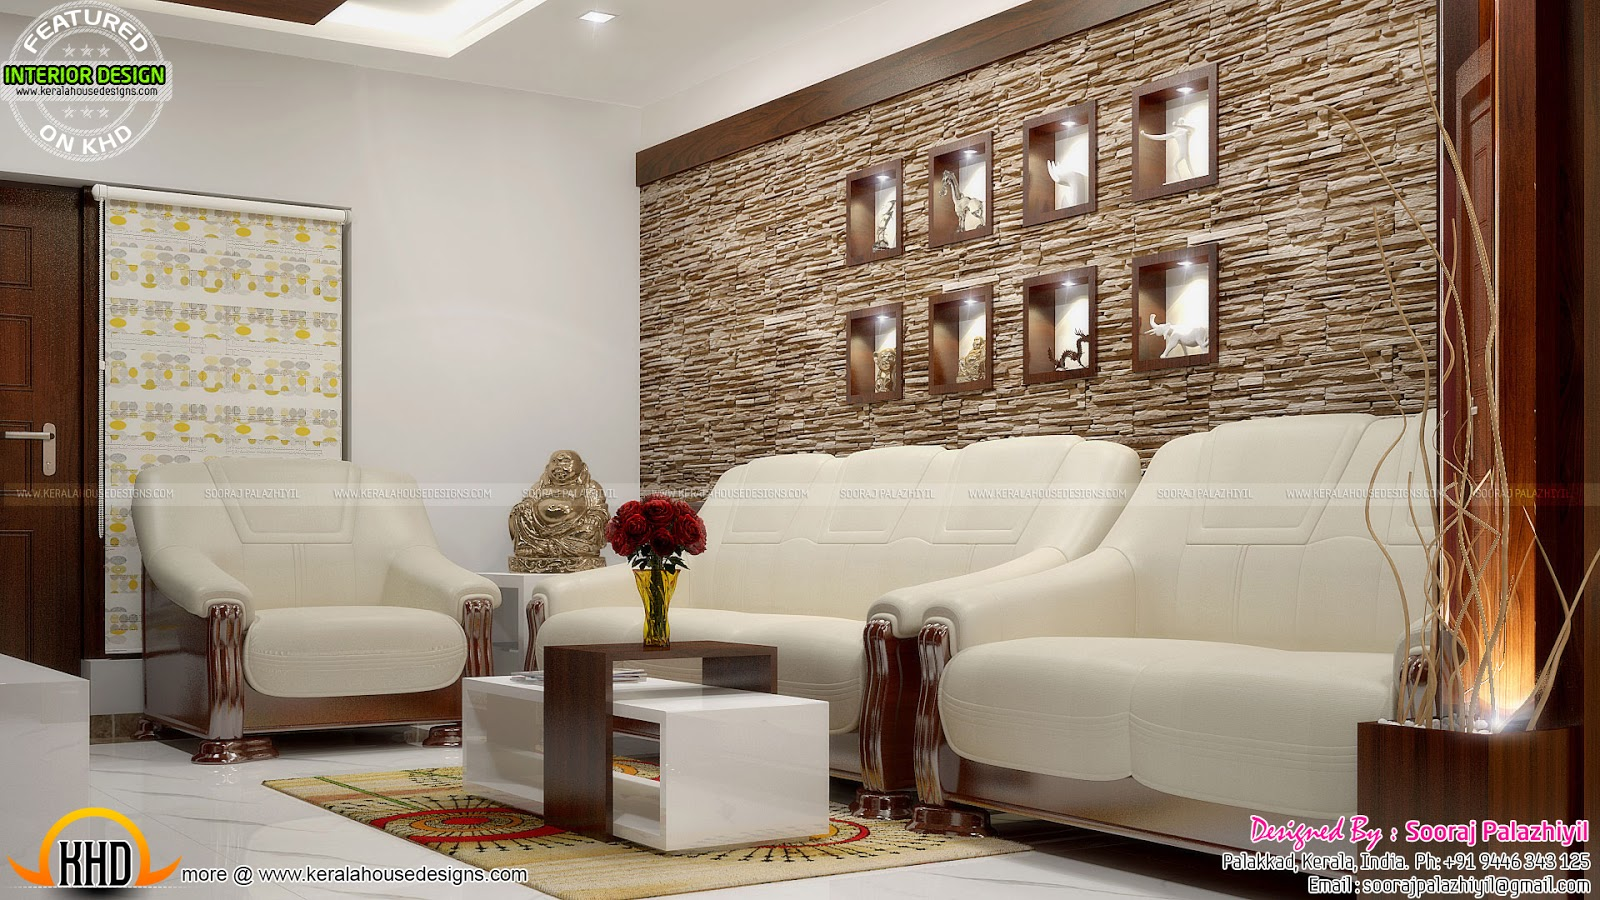 Simple apartment interior in kerala kerala home design and floor plans Interior designing of your home